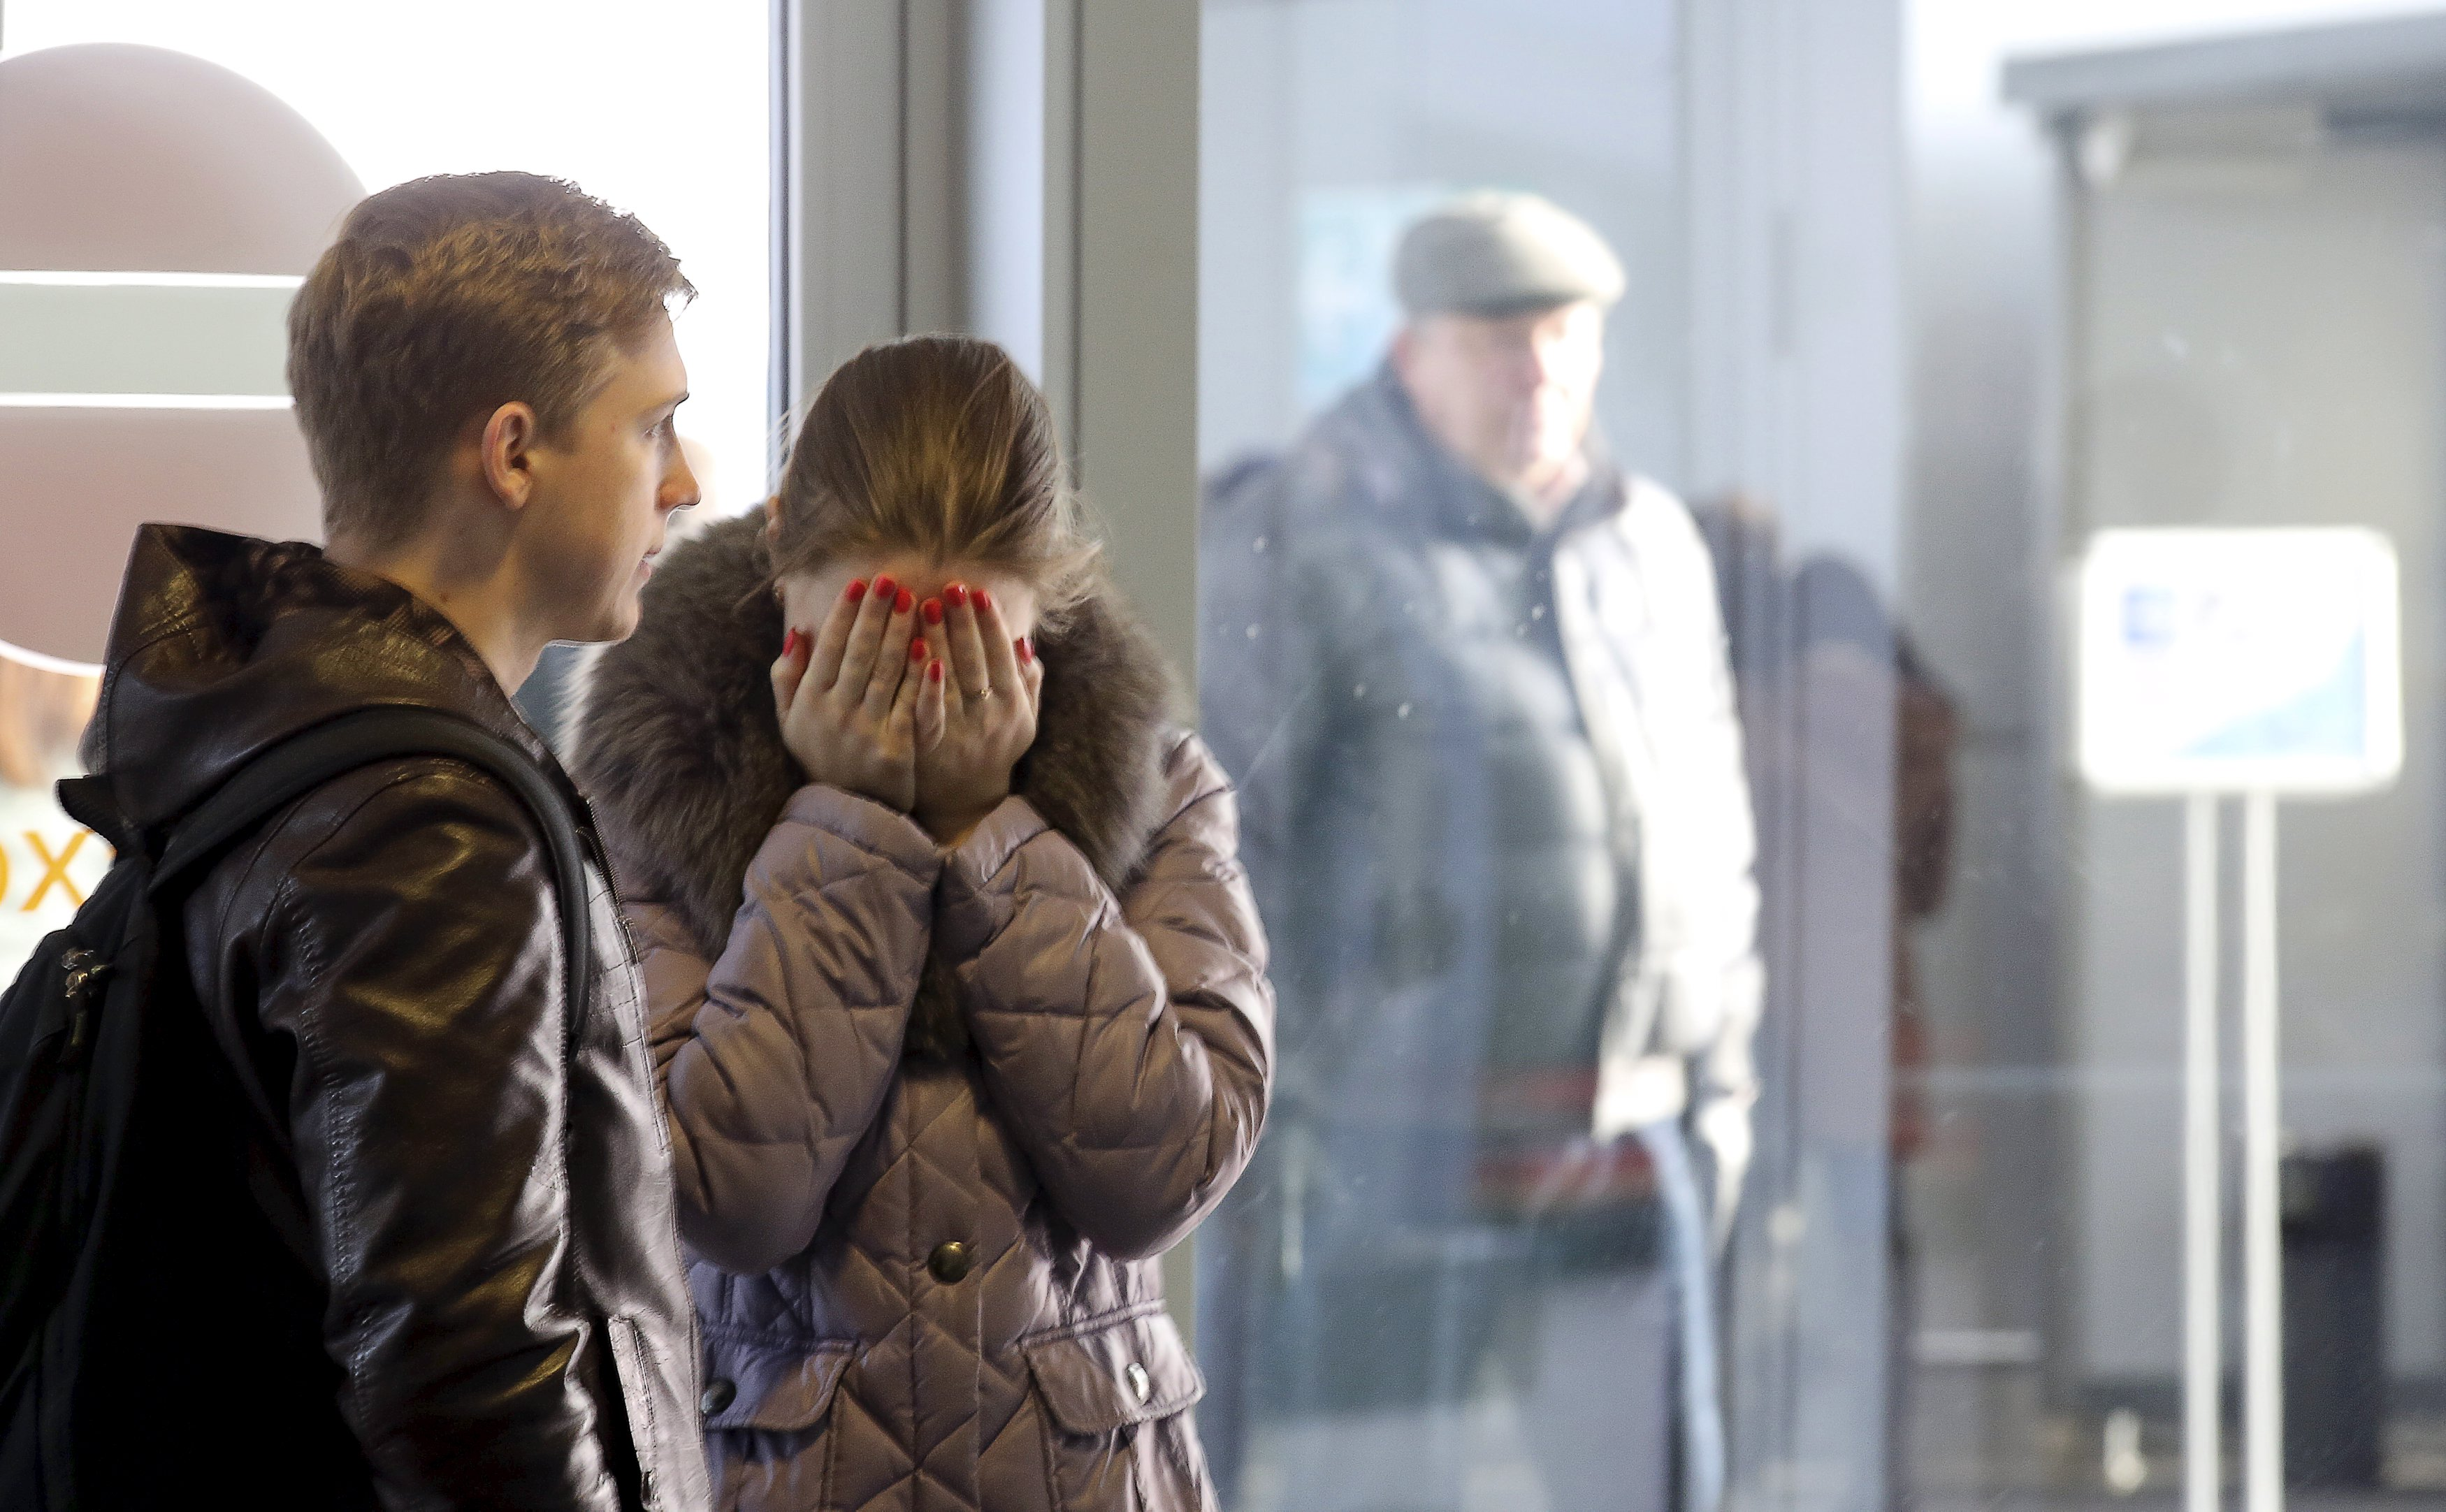 A woman reacts at Pulkovo airport in St. Petersburg, Russia, October 31, 2015. A Russian airliner carrying 224 passengers and crew crashed in Egypt's Sinai peninsula on Saturday, the Egyptian civil aviation authority said, and a security officer who arrived at the scene said most of the passengers appeared to have been killed. The Airbus A 321, operated by Russian airline Kogalymavia, was flying from the Sinai Red Sea resort of Sharm el-Sheikh to St Petersburg in Russia when it went down in a desolate mountainous area of central Sinai soon after daybreak, the aviation ministry said. REUTERS/Peter Kovalev